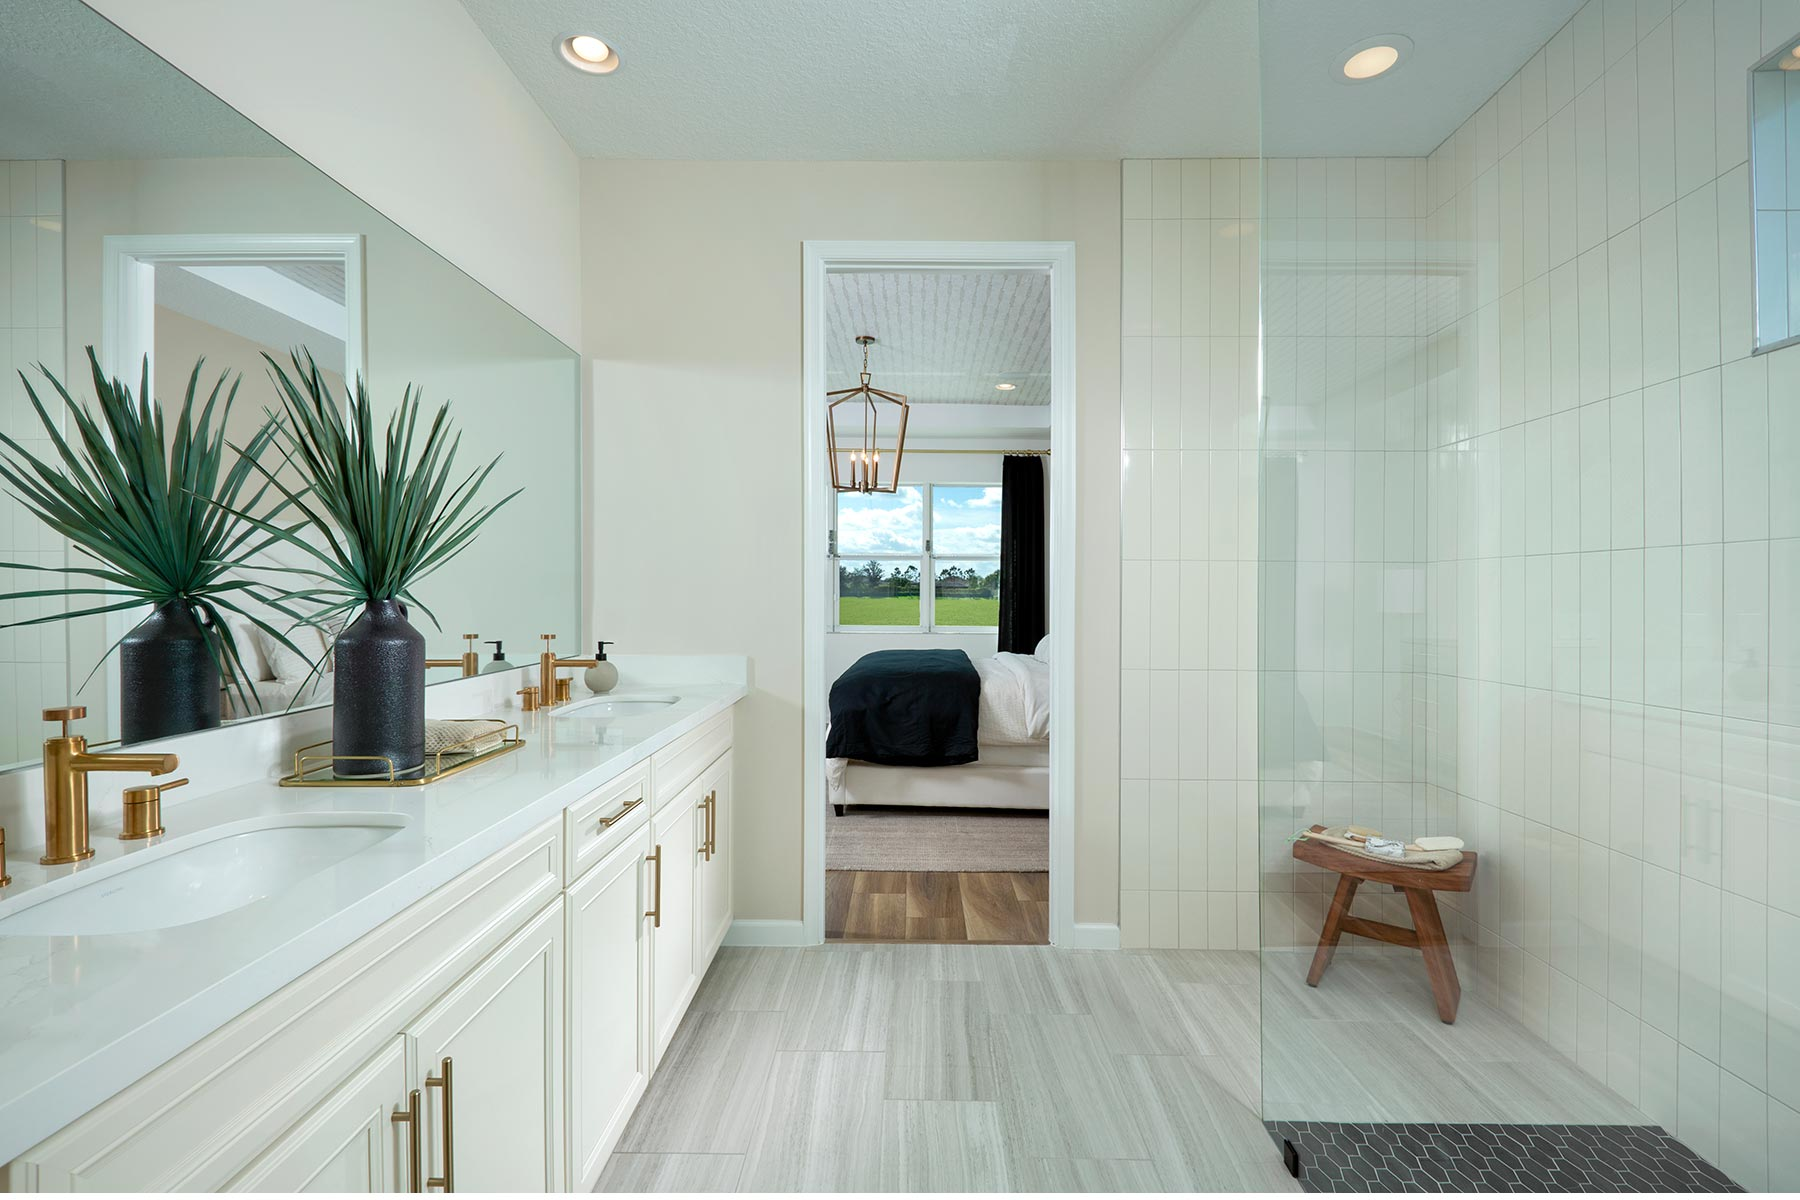 Tradition - Manderlie Bathroom_Master in Port St. Lucie Florida by Mattamy Homes